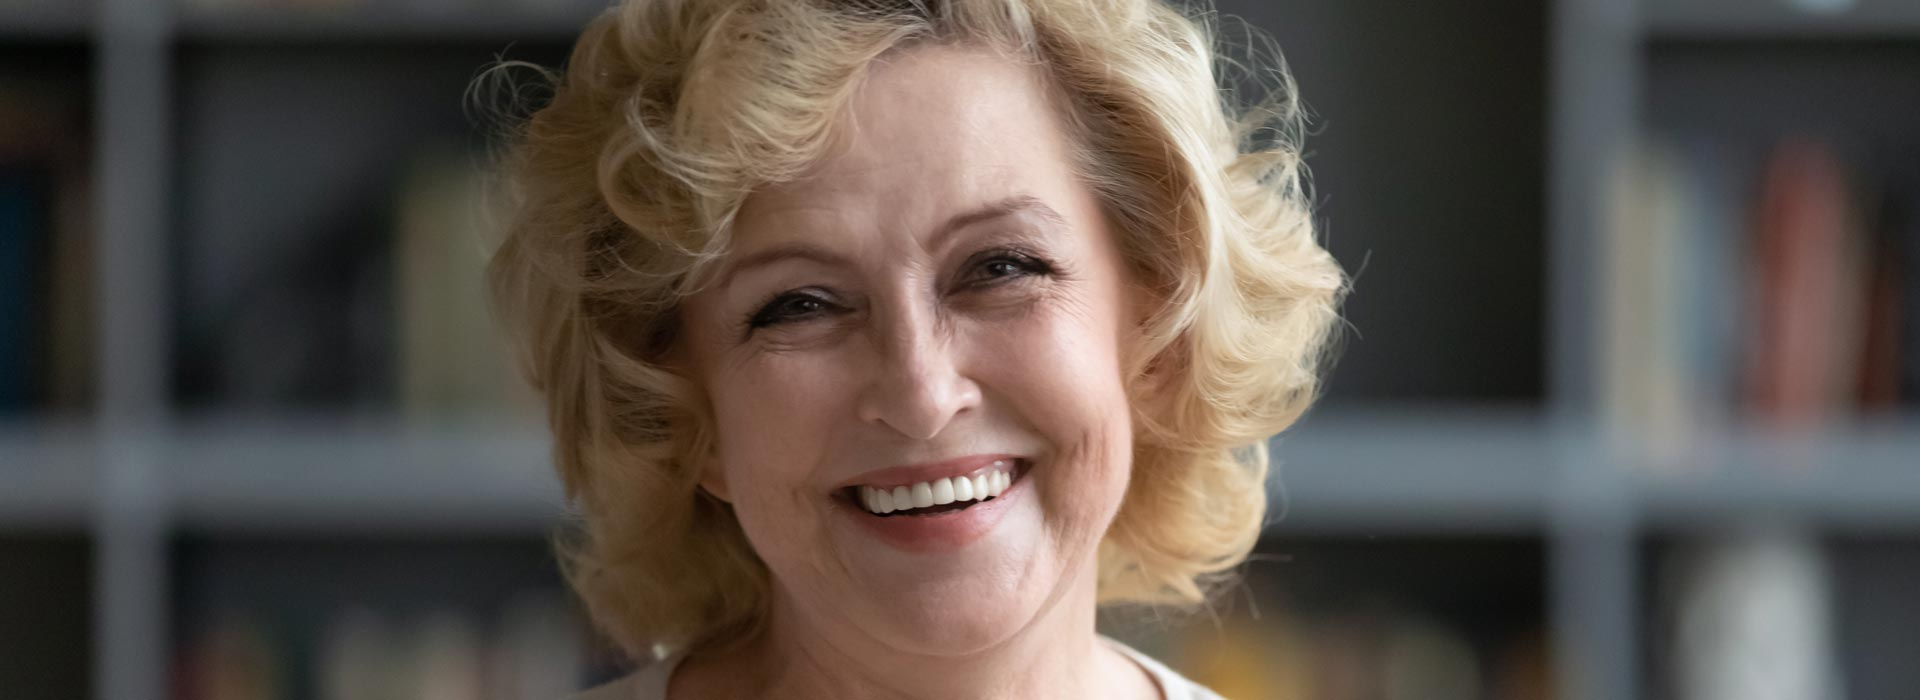 Happy woman after having dental implant treatment